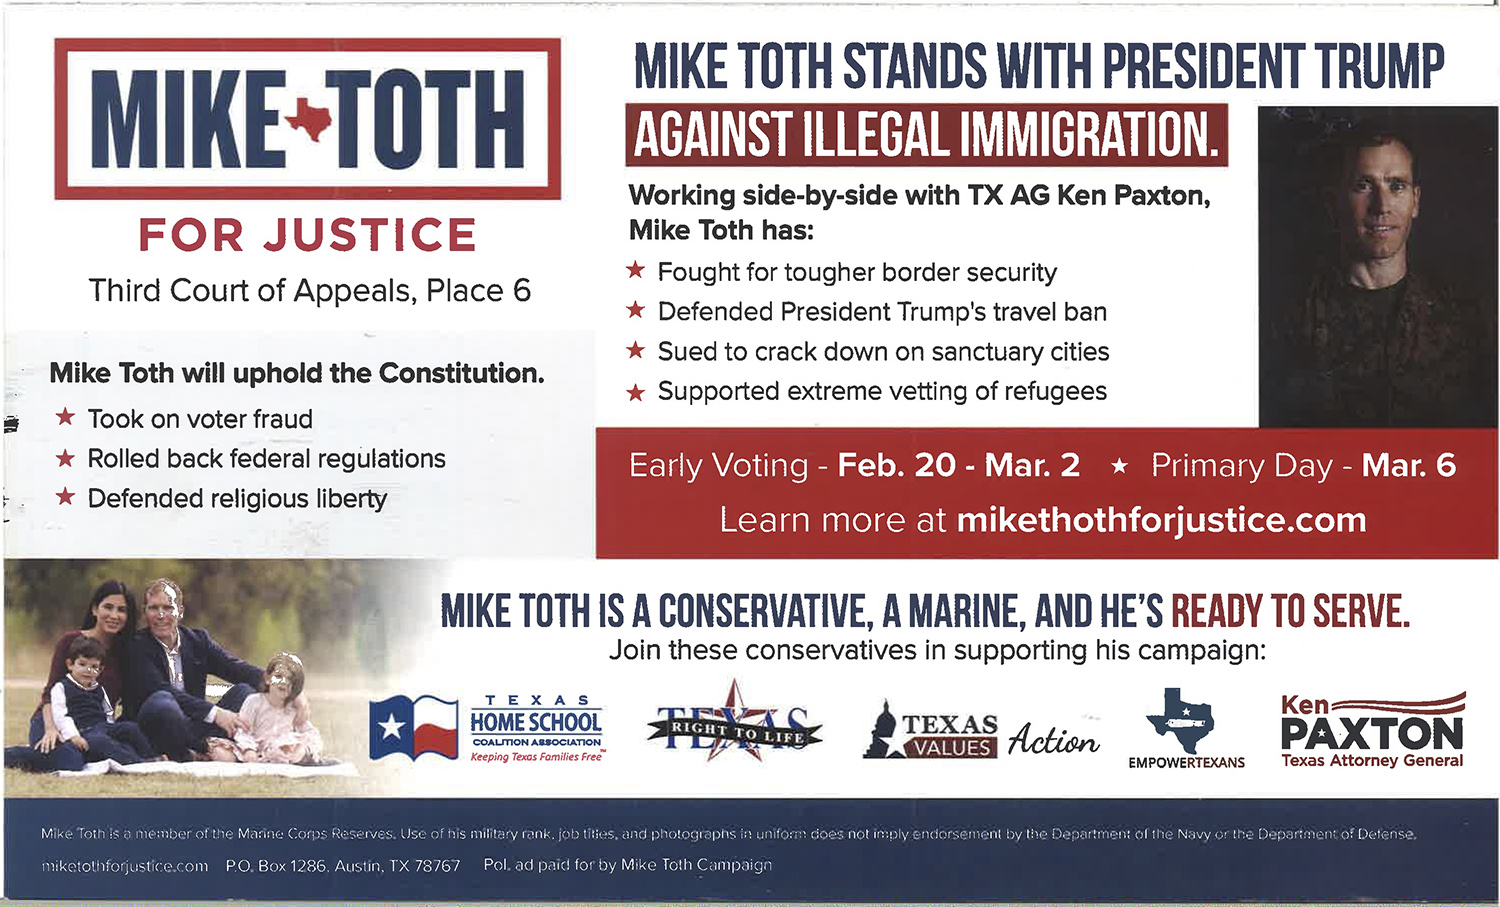 Republican court candidate Mike Toth, going beyond the typical tactic of promoting a certain judicial philosophy, is openly embracing Donald Trump and hot-button social issues in his race for the 3rd Court of Appeals. This is one side of a recent mail advertisement he sent out.